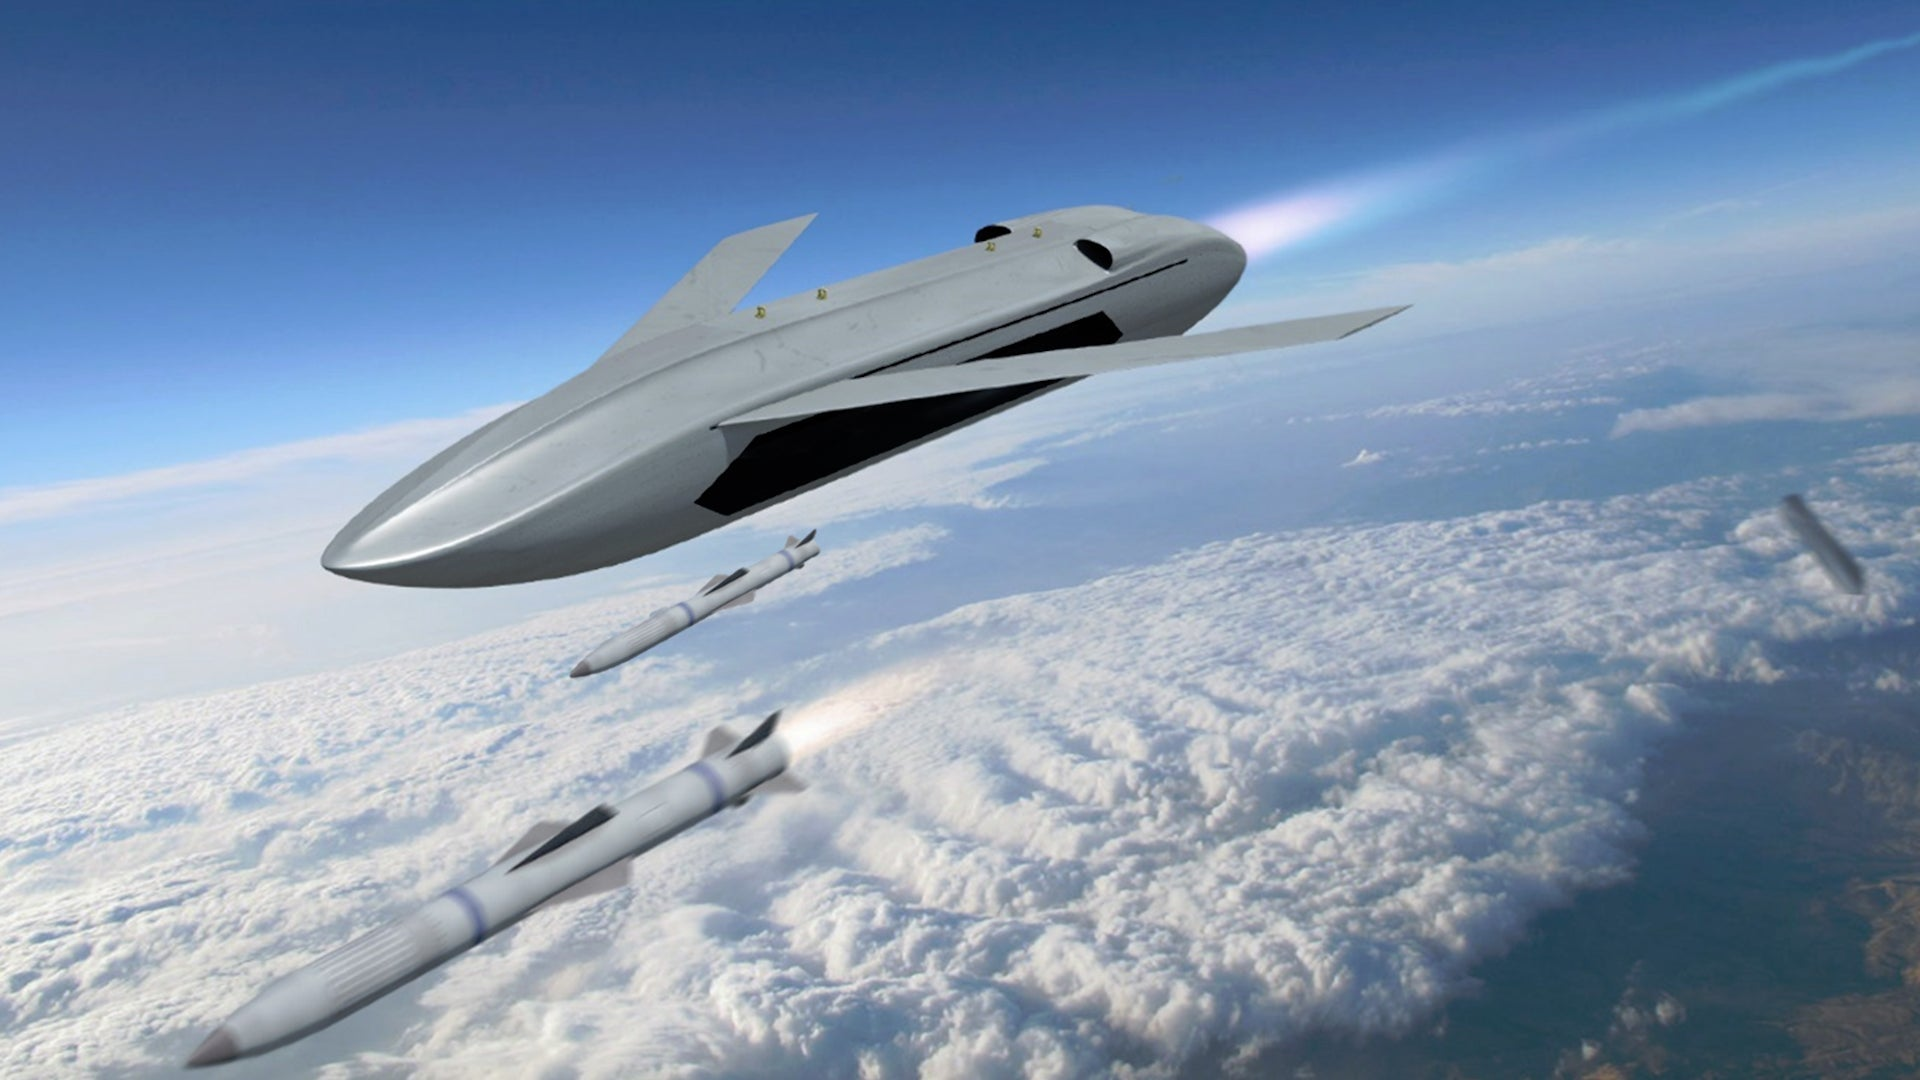 DARPA is developing an air-launched drone missile that fires air-to-air missiles